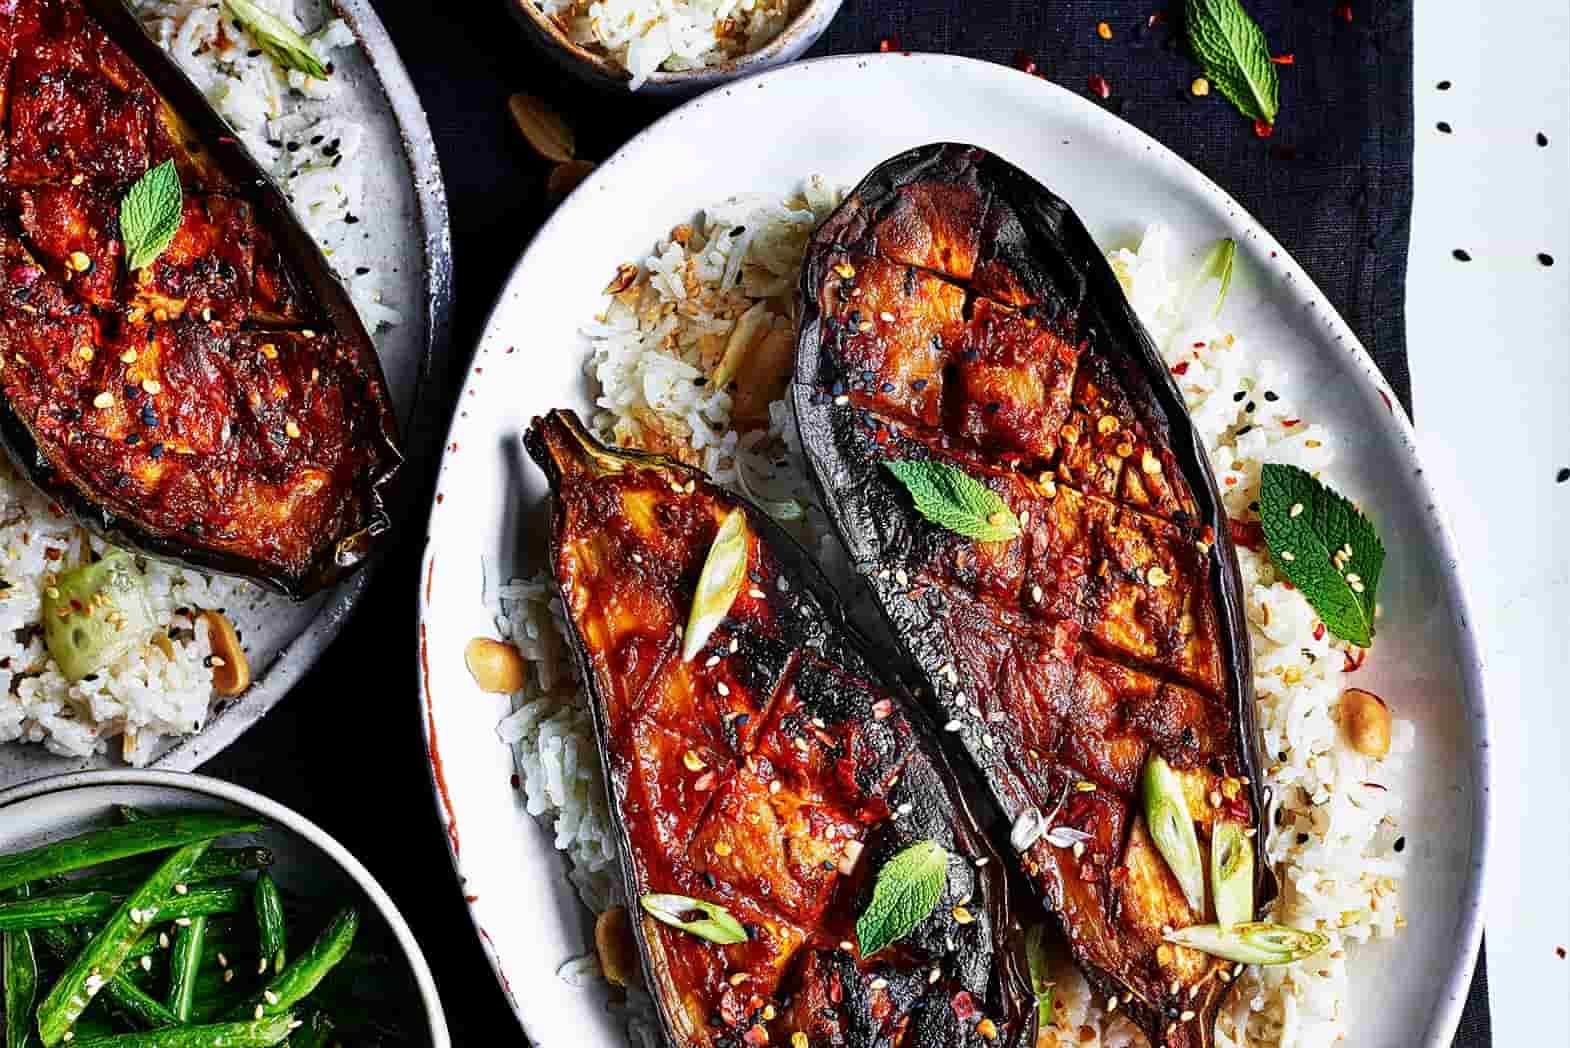 Recipe for Miso & Maple Glazed Aubergine